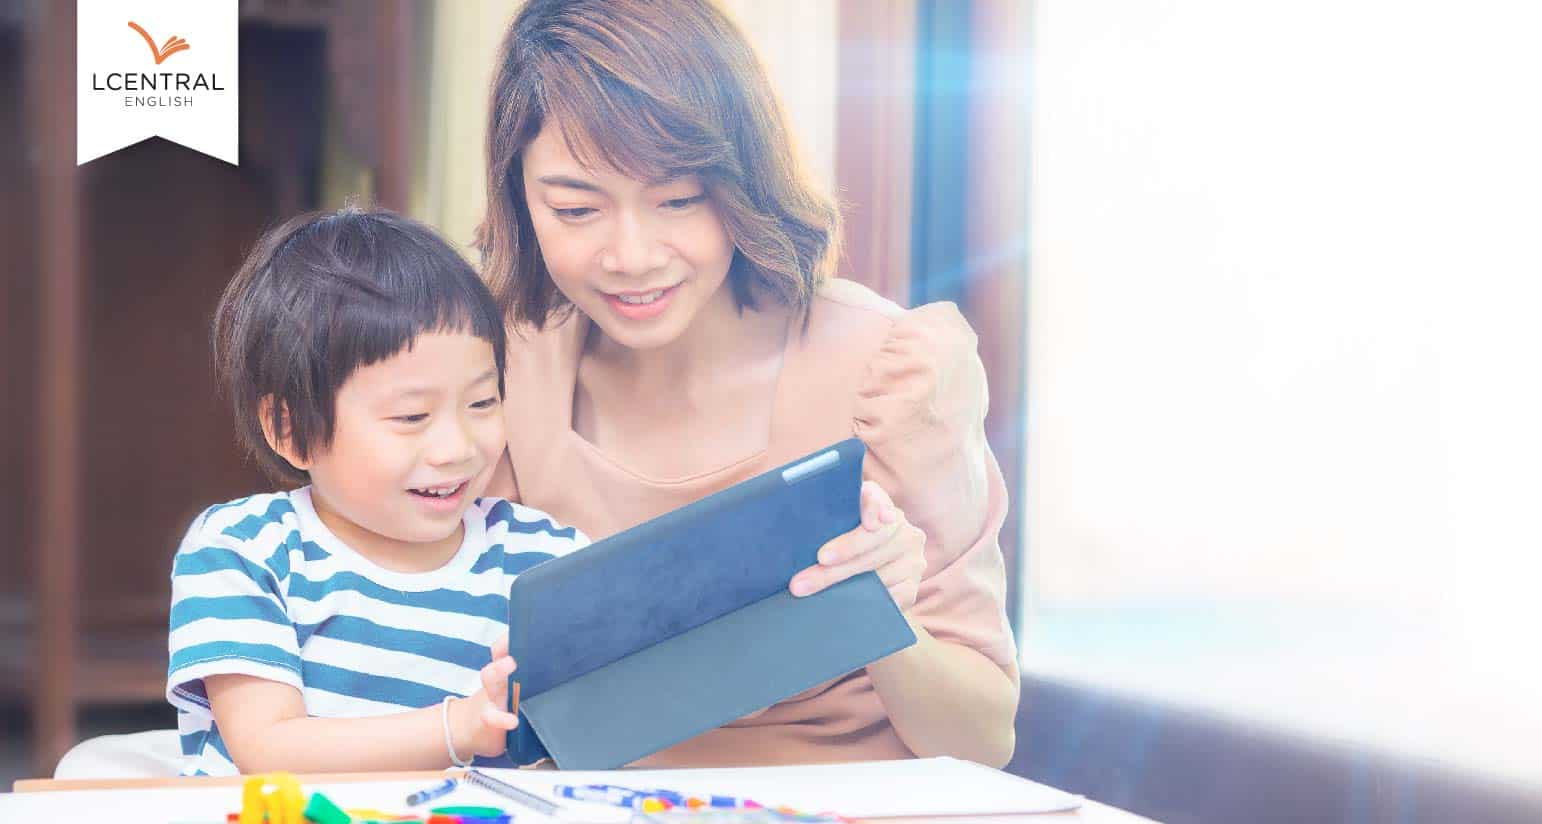 LCentral English Enrichment Tuition Singapore Getting the most out of screen time quality content